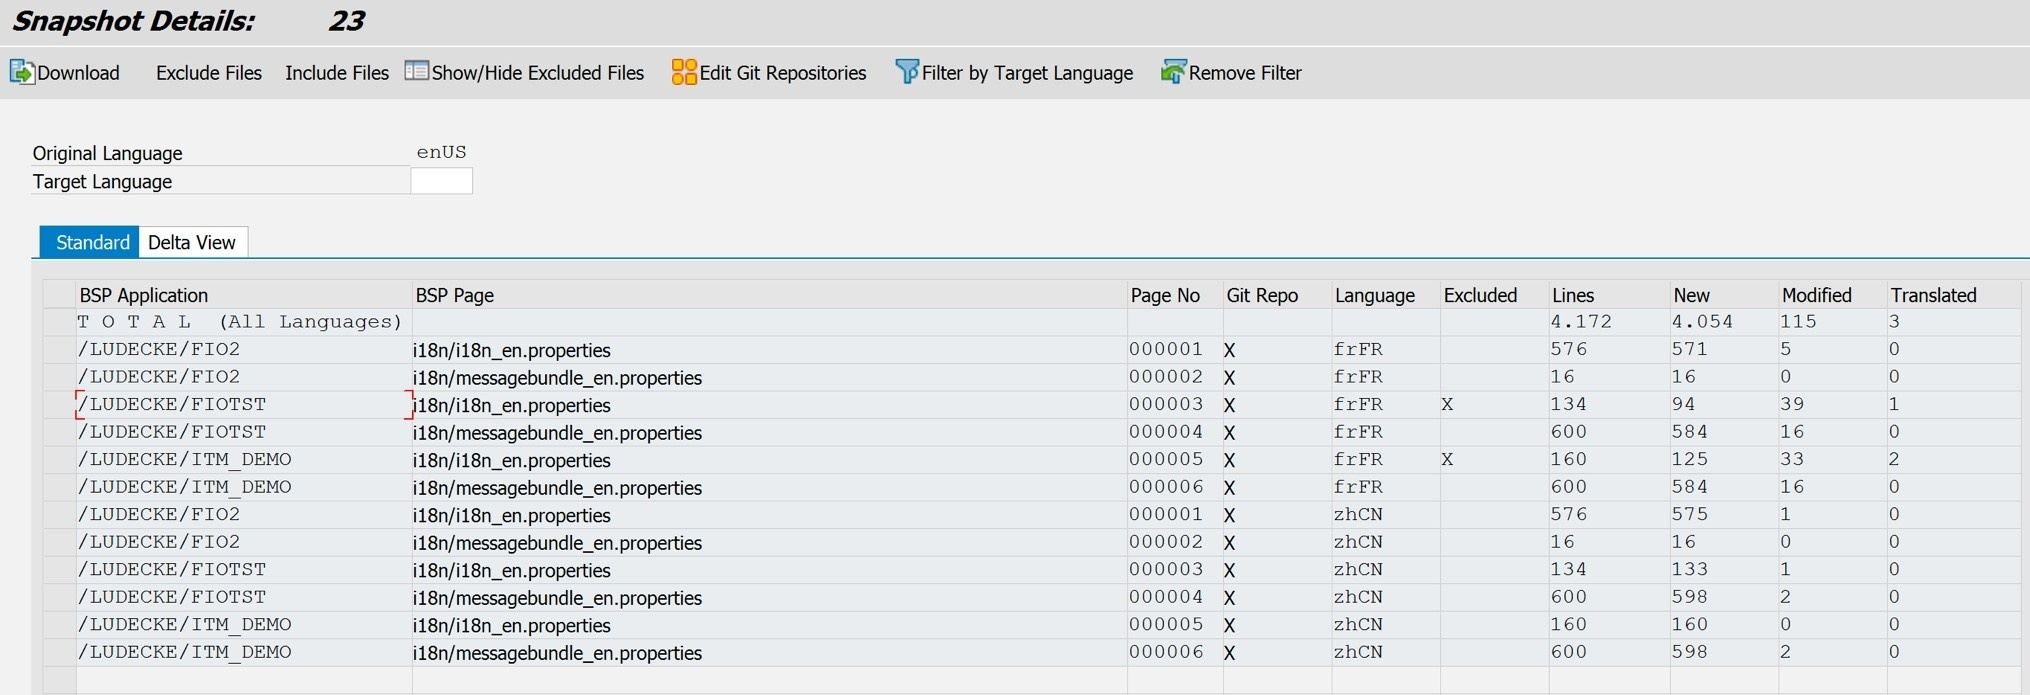 Running Translation and Development in Parallel for SAP Fiori Apps